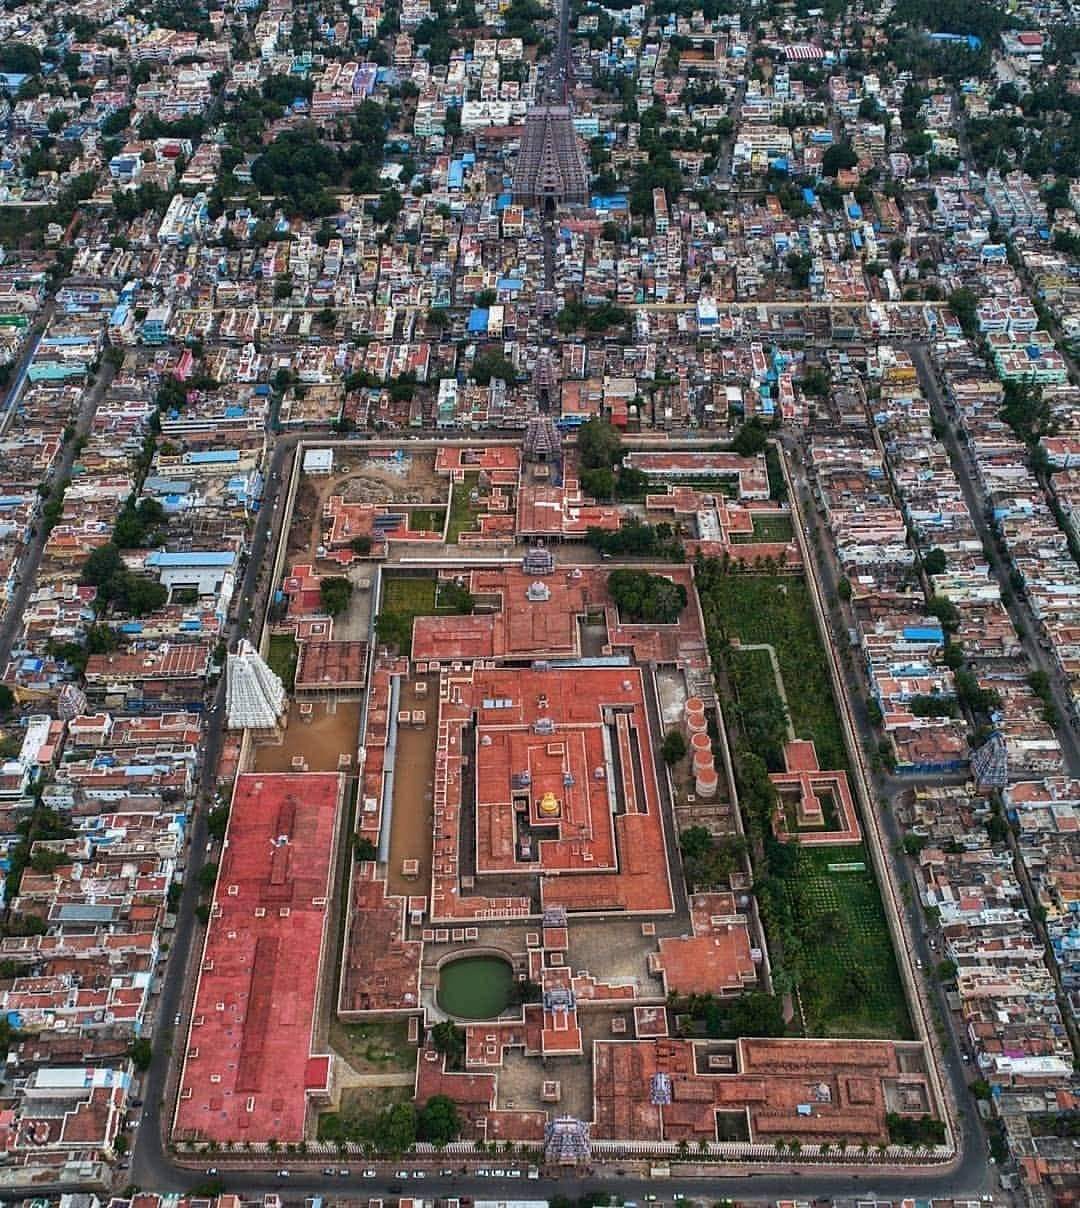 An aerial view of Srirangam - the world's largest functioning temple